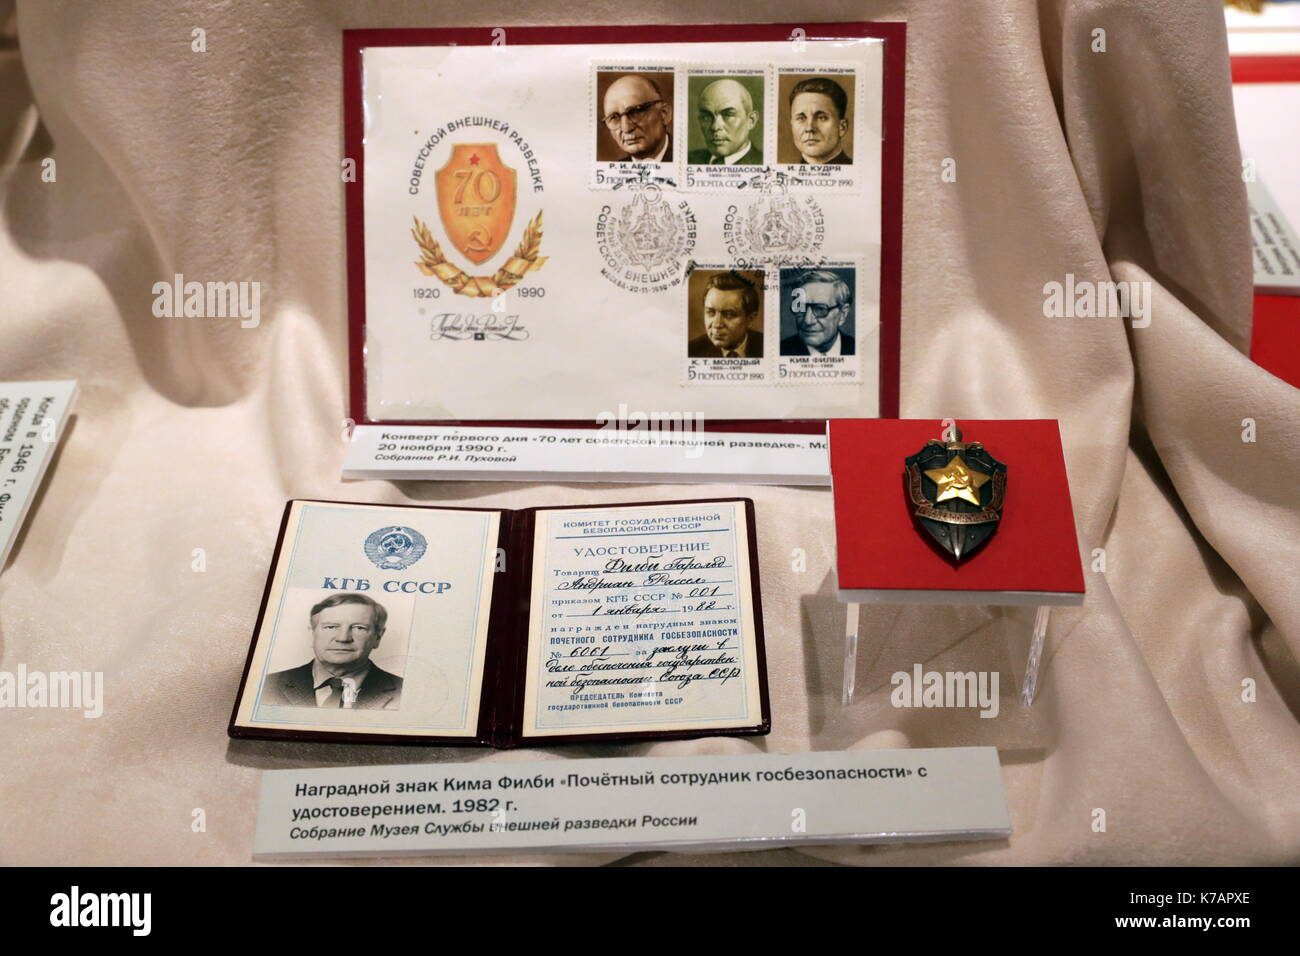 Moscow, Russia. 15th Sep, 2017. A decoration awarded by the KGB to Kim Philby for his contribution to the national security of the USSR on display as part of an exhibition titled 'Kim Philby in intelligence services and in personal life' about Harold Adrian Russell Philby (Kim Philby), a British intelligence worker who provided intelligence to the Soviet Union, at the office of the Russian Historical Society. Credit: Alexander Shalgin/Press Office of the Russian Historical Society/TASS/Alamy Live News - Stock Image